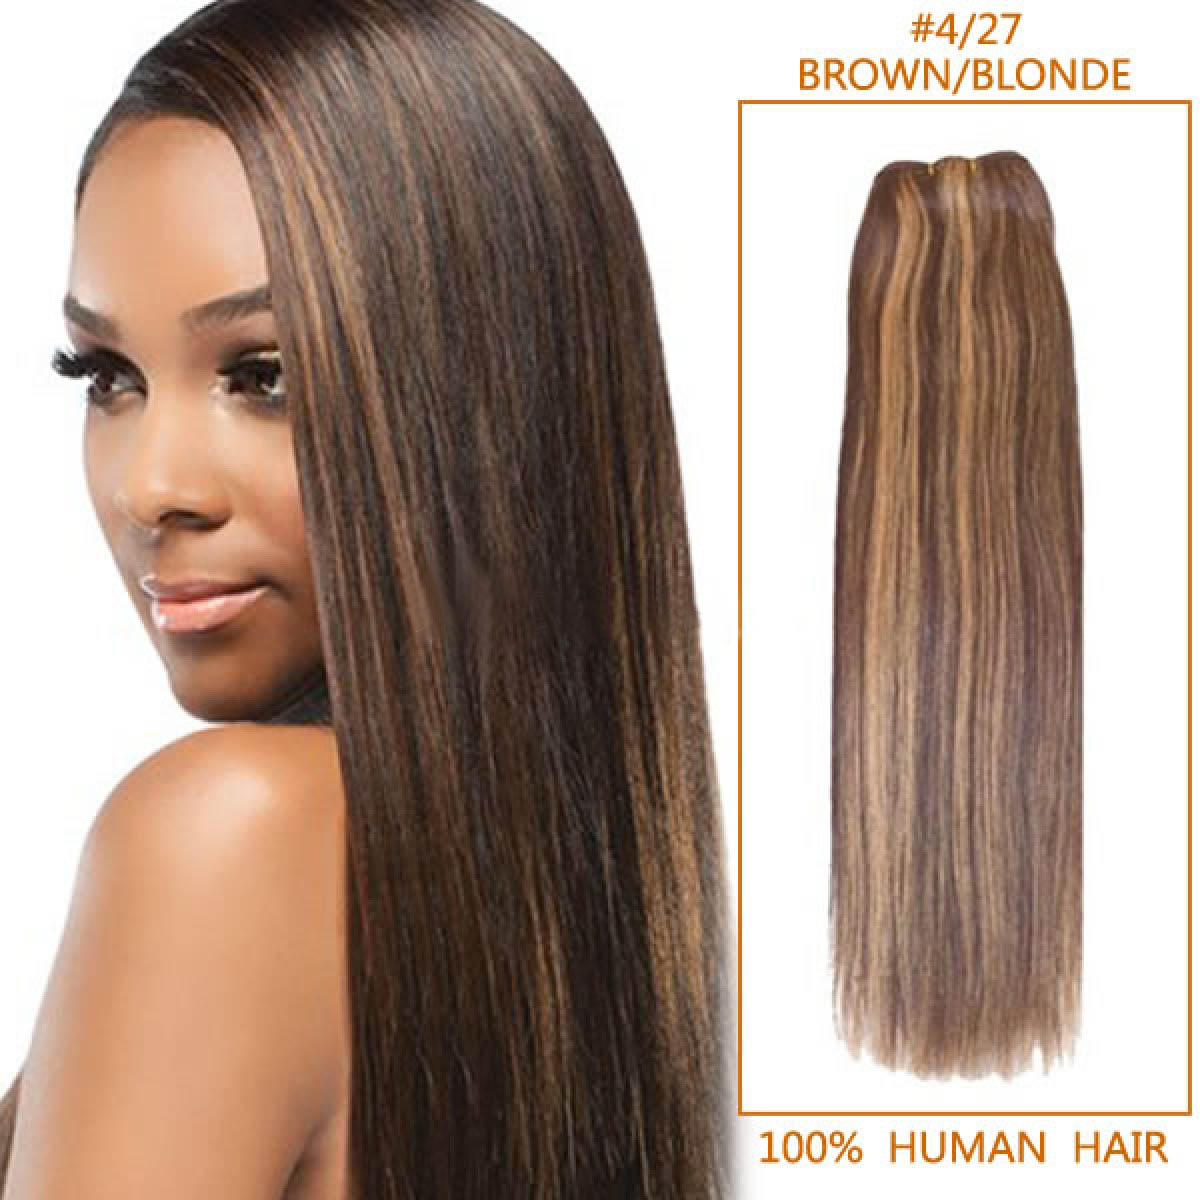 22 Inch 4 27 Brown Blonde Straight Indian Remy Hair Wefts